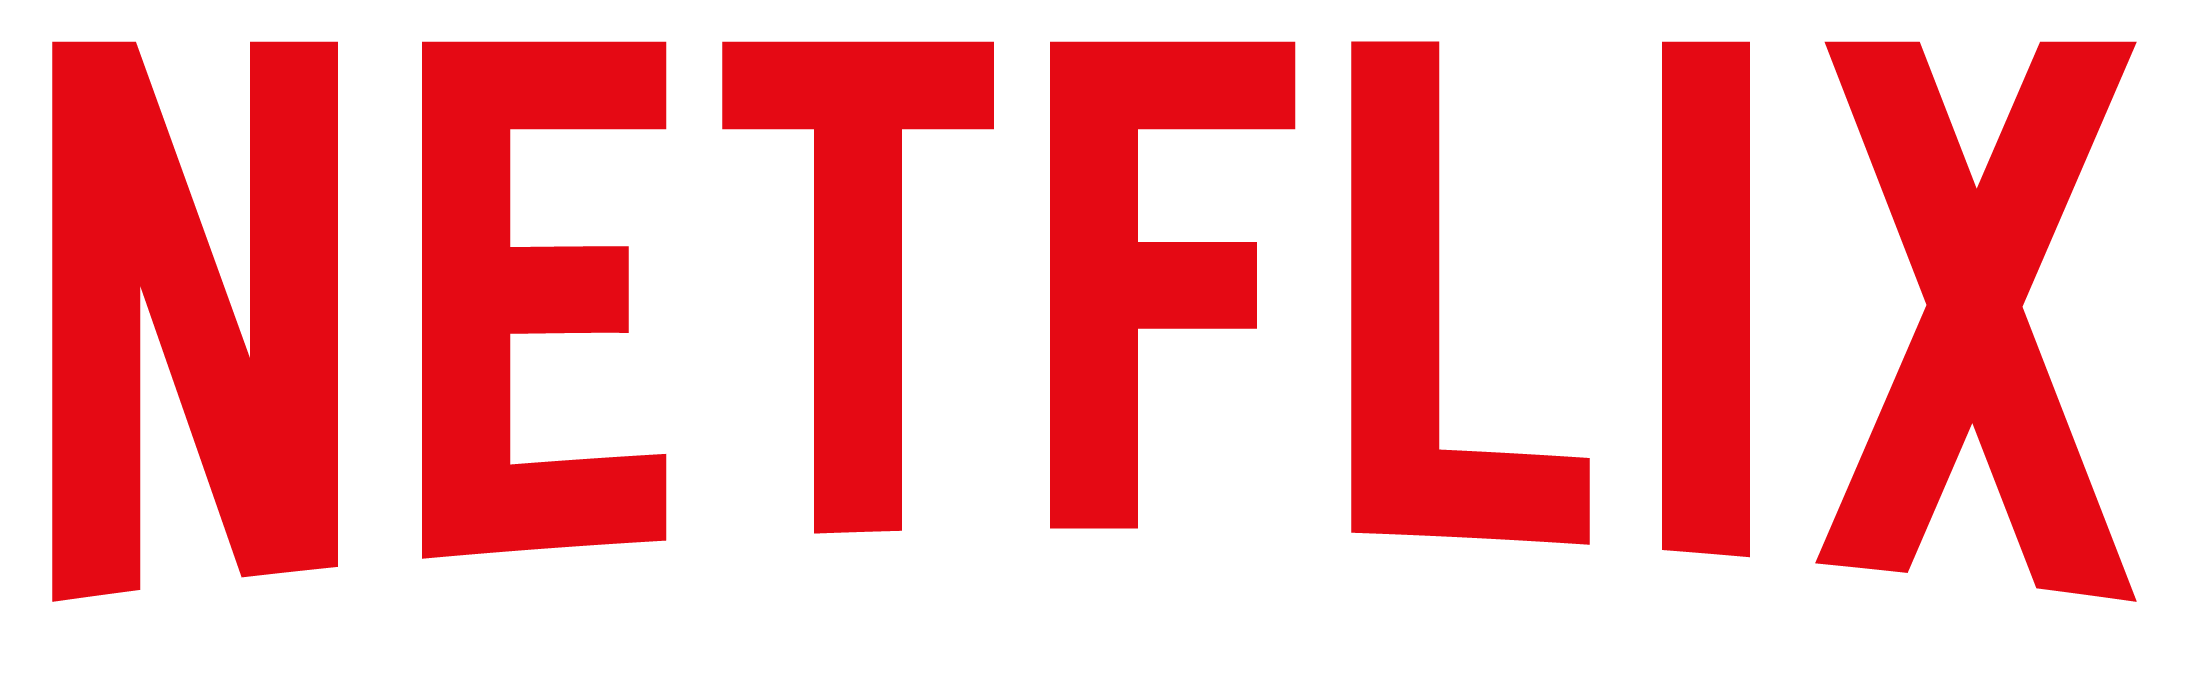 Nightflyers en streaming sur Netflix